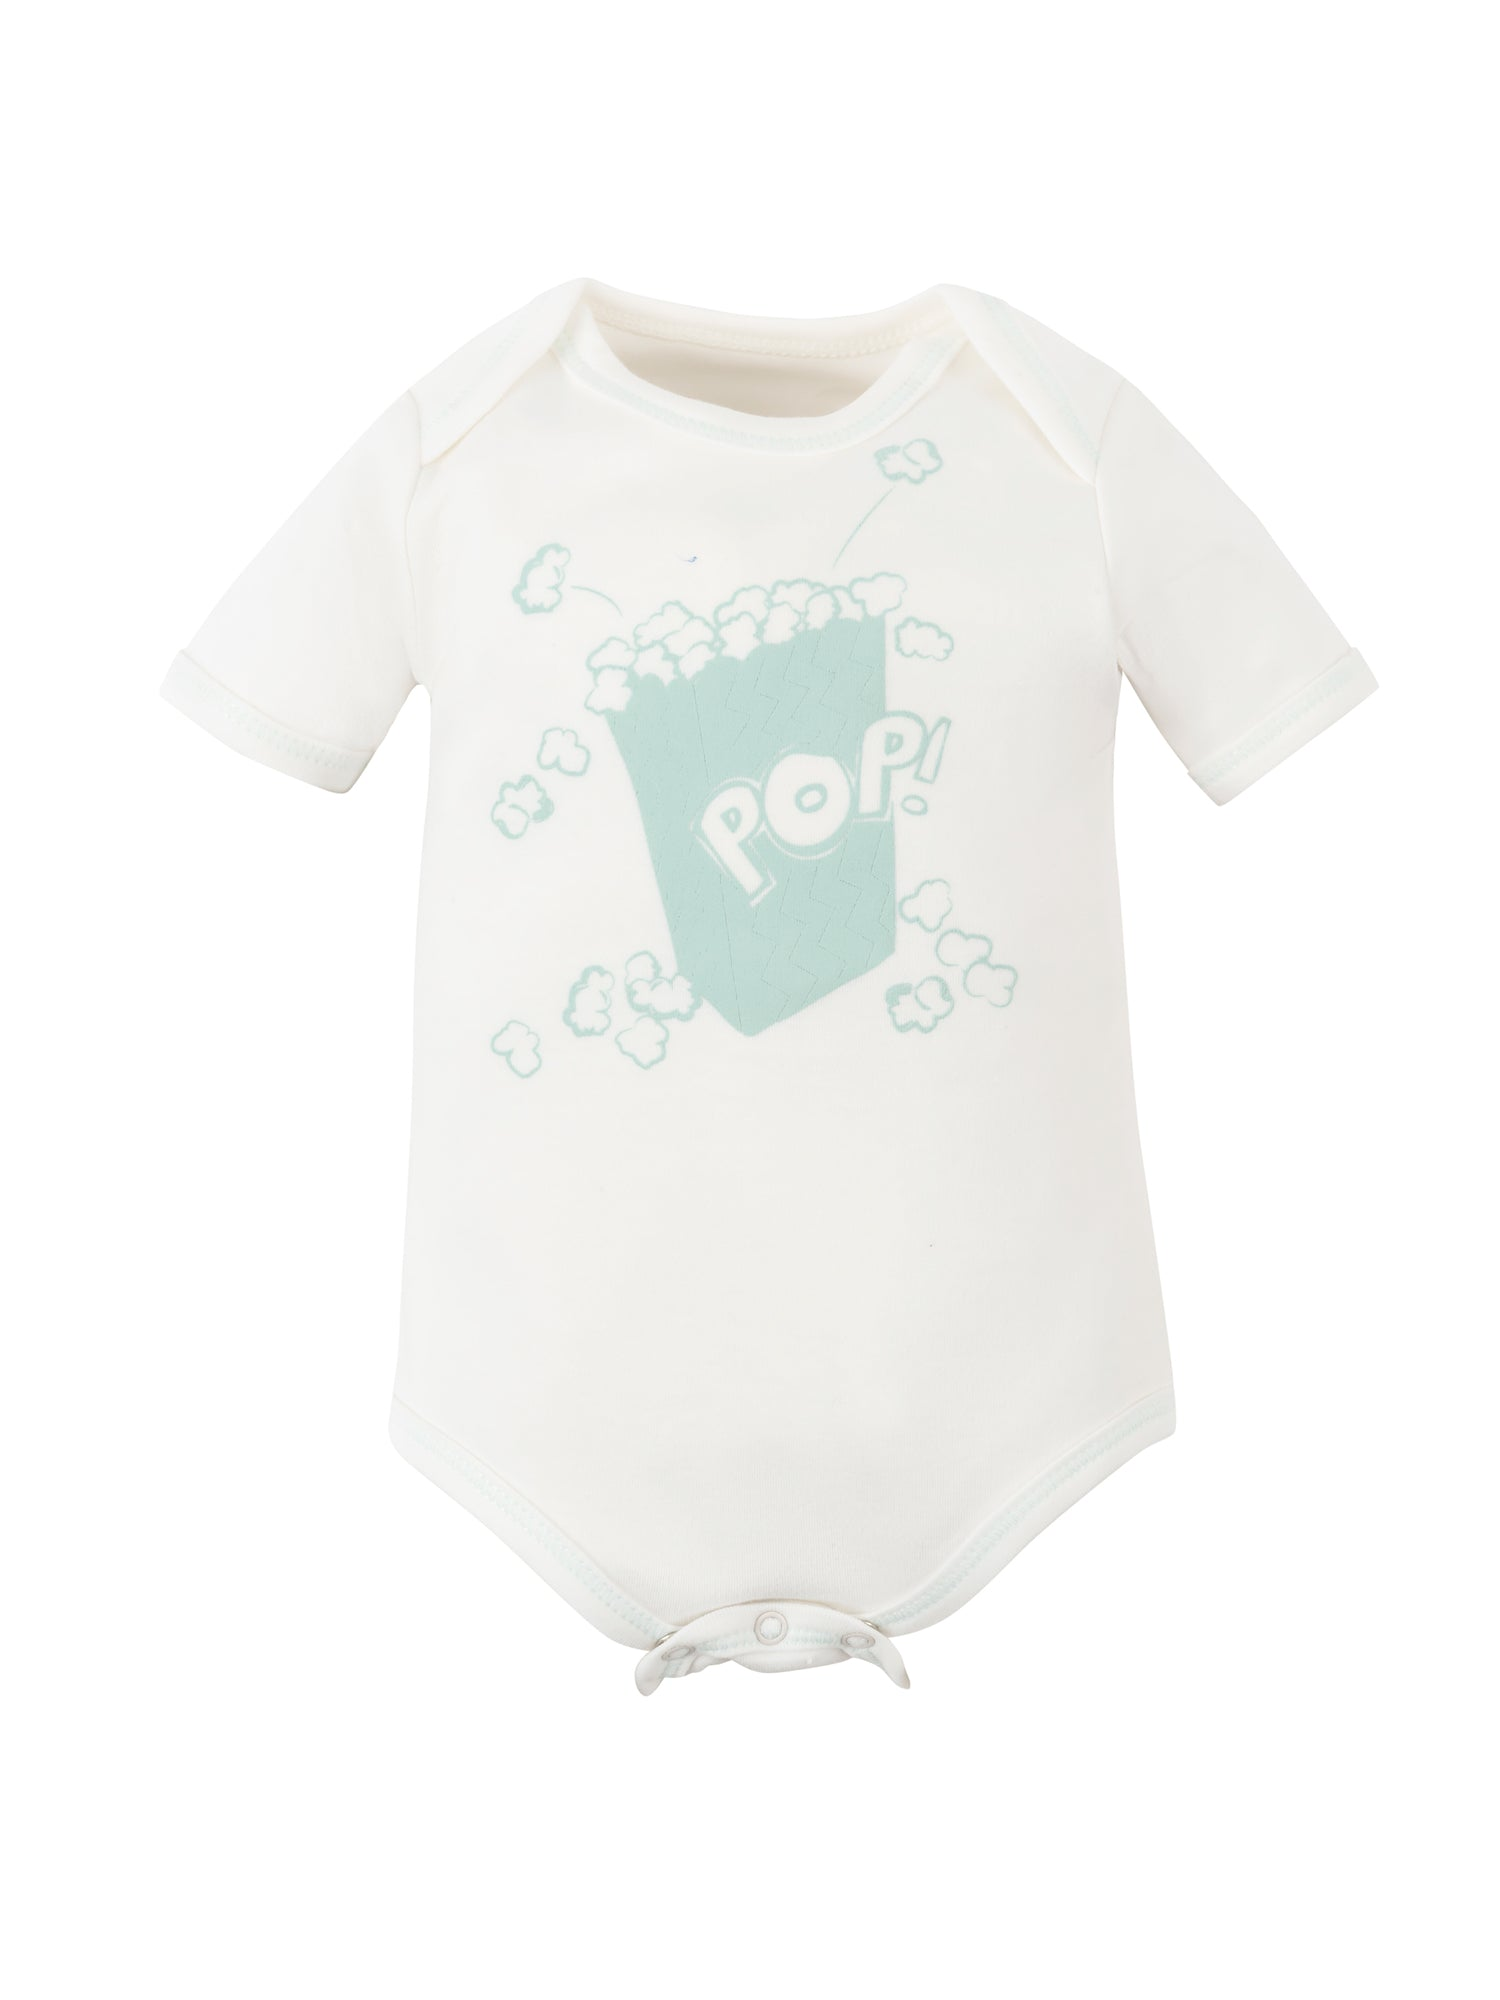 Short Sleeve Lap Shoulder Bodysuit - Popcorn Screen Print